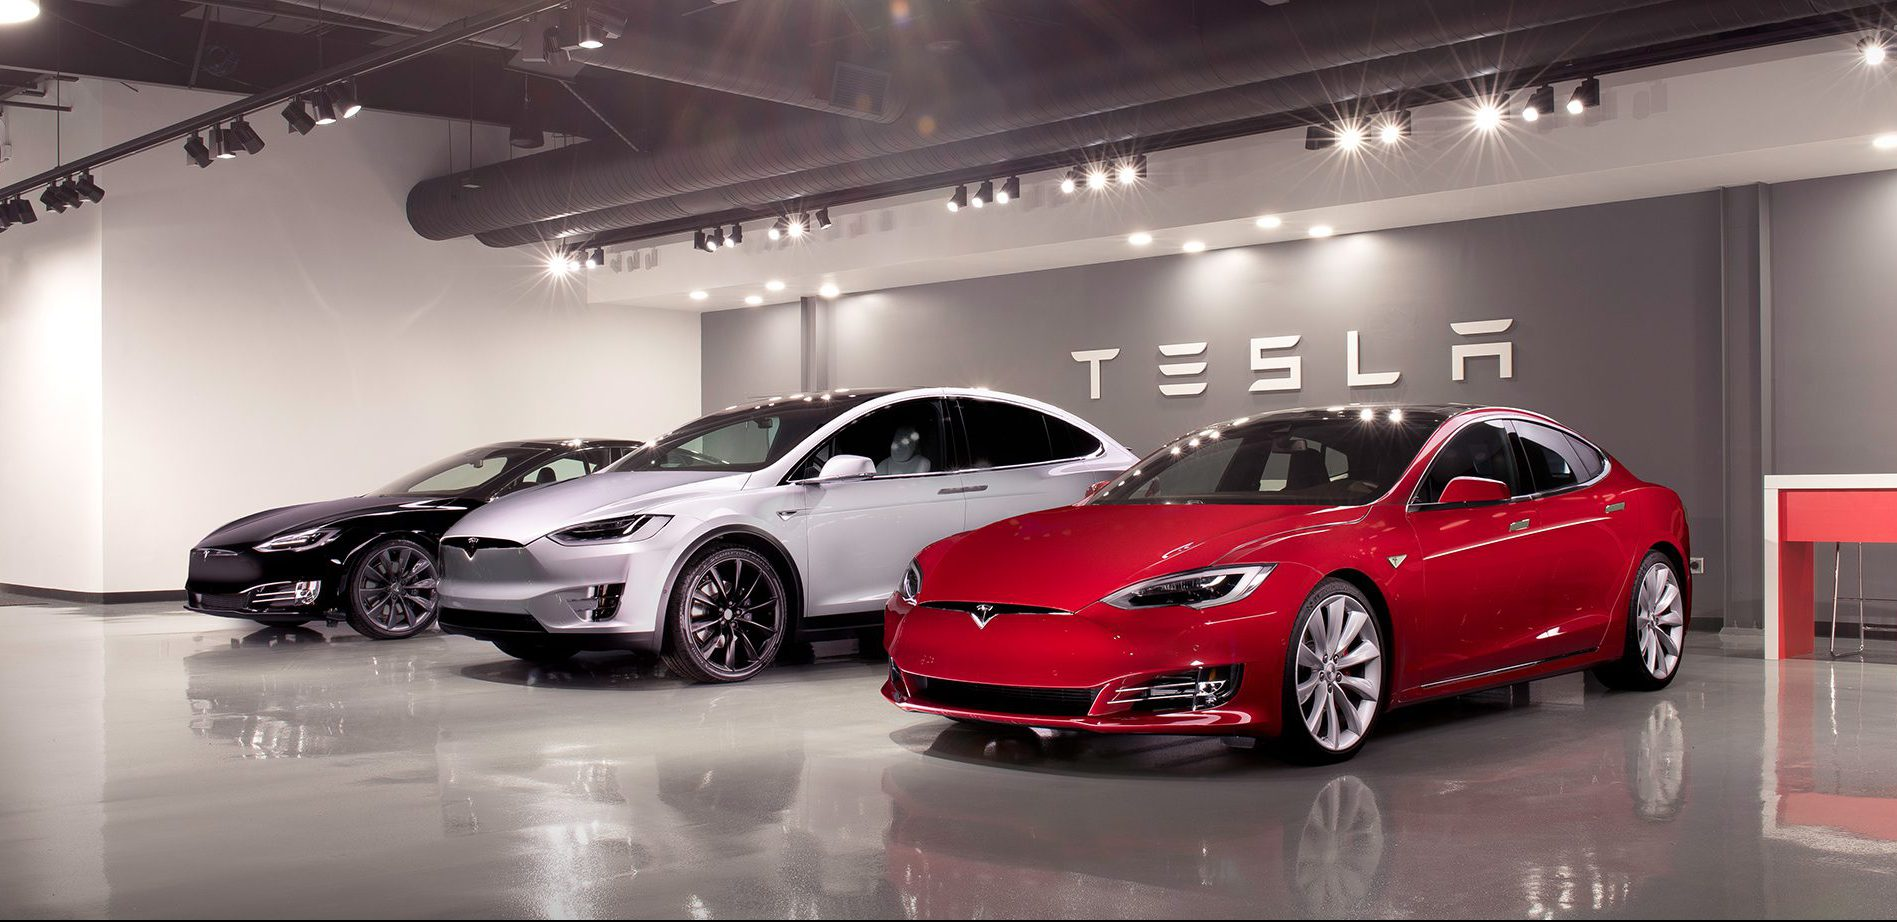 Tesla is releasing its fleet vehicles for sale to help deliveries before tax credit phase-out